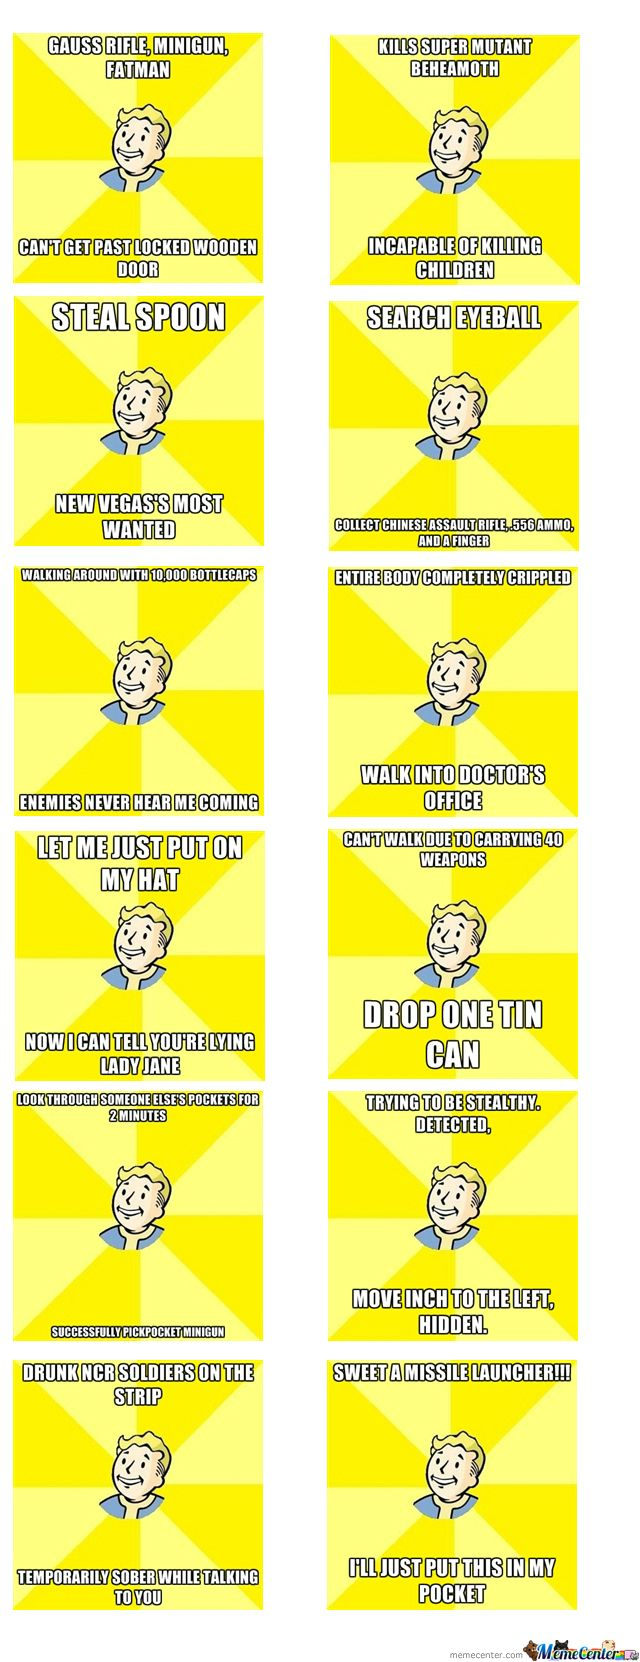 Opinion fallout 3 funny memes removed